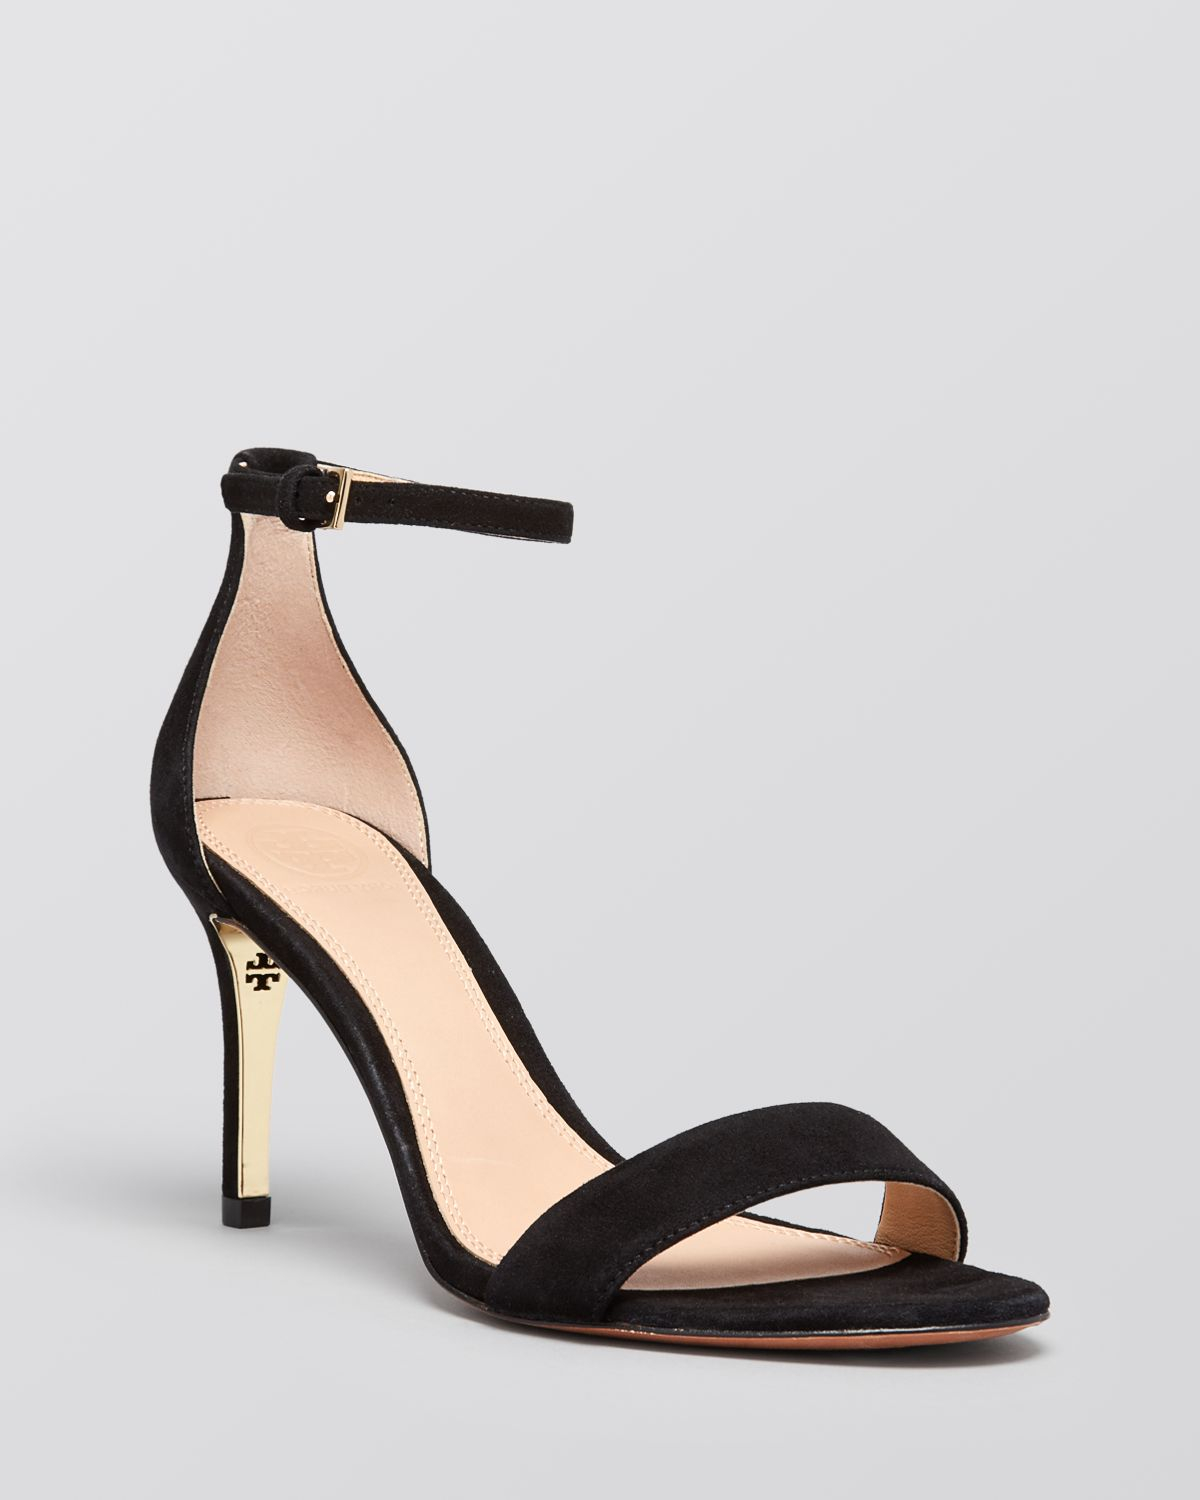 Tory burch Ankle Strap Sandals - Keri High Heel in Black | Lyst